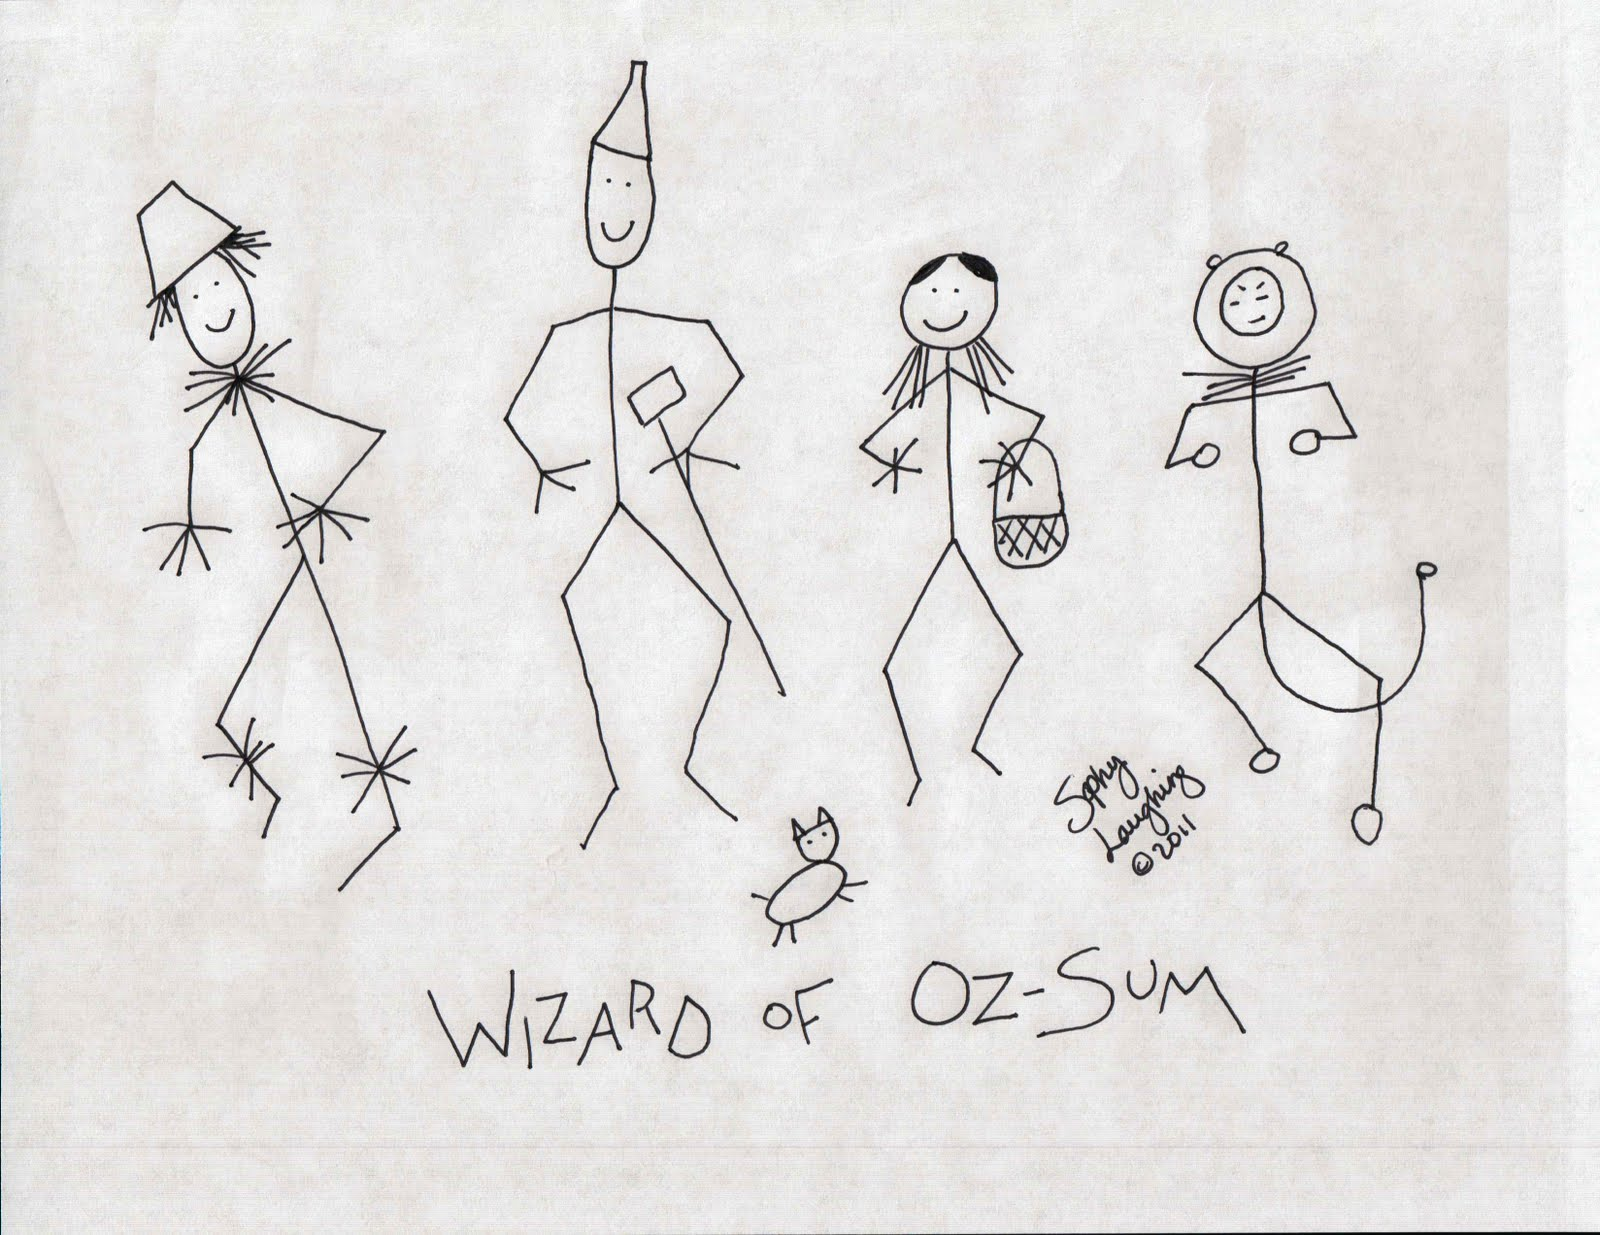 1600x1235 Wizard Of Oz Sum Stick Figures Sophy Laughing Comics